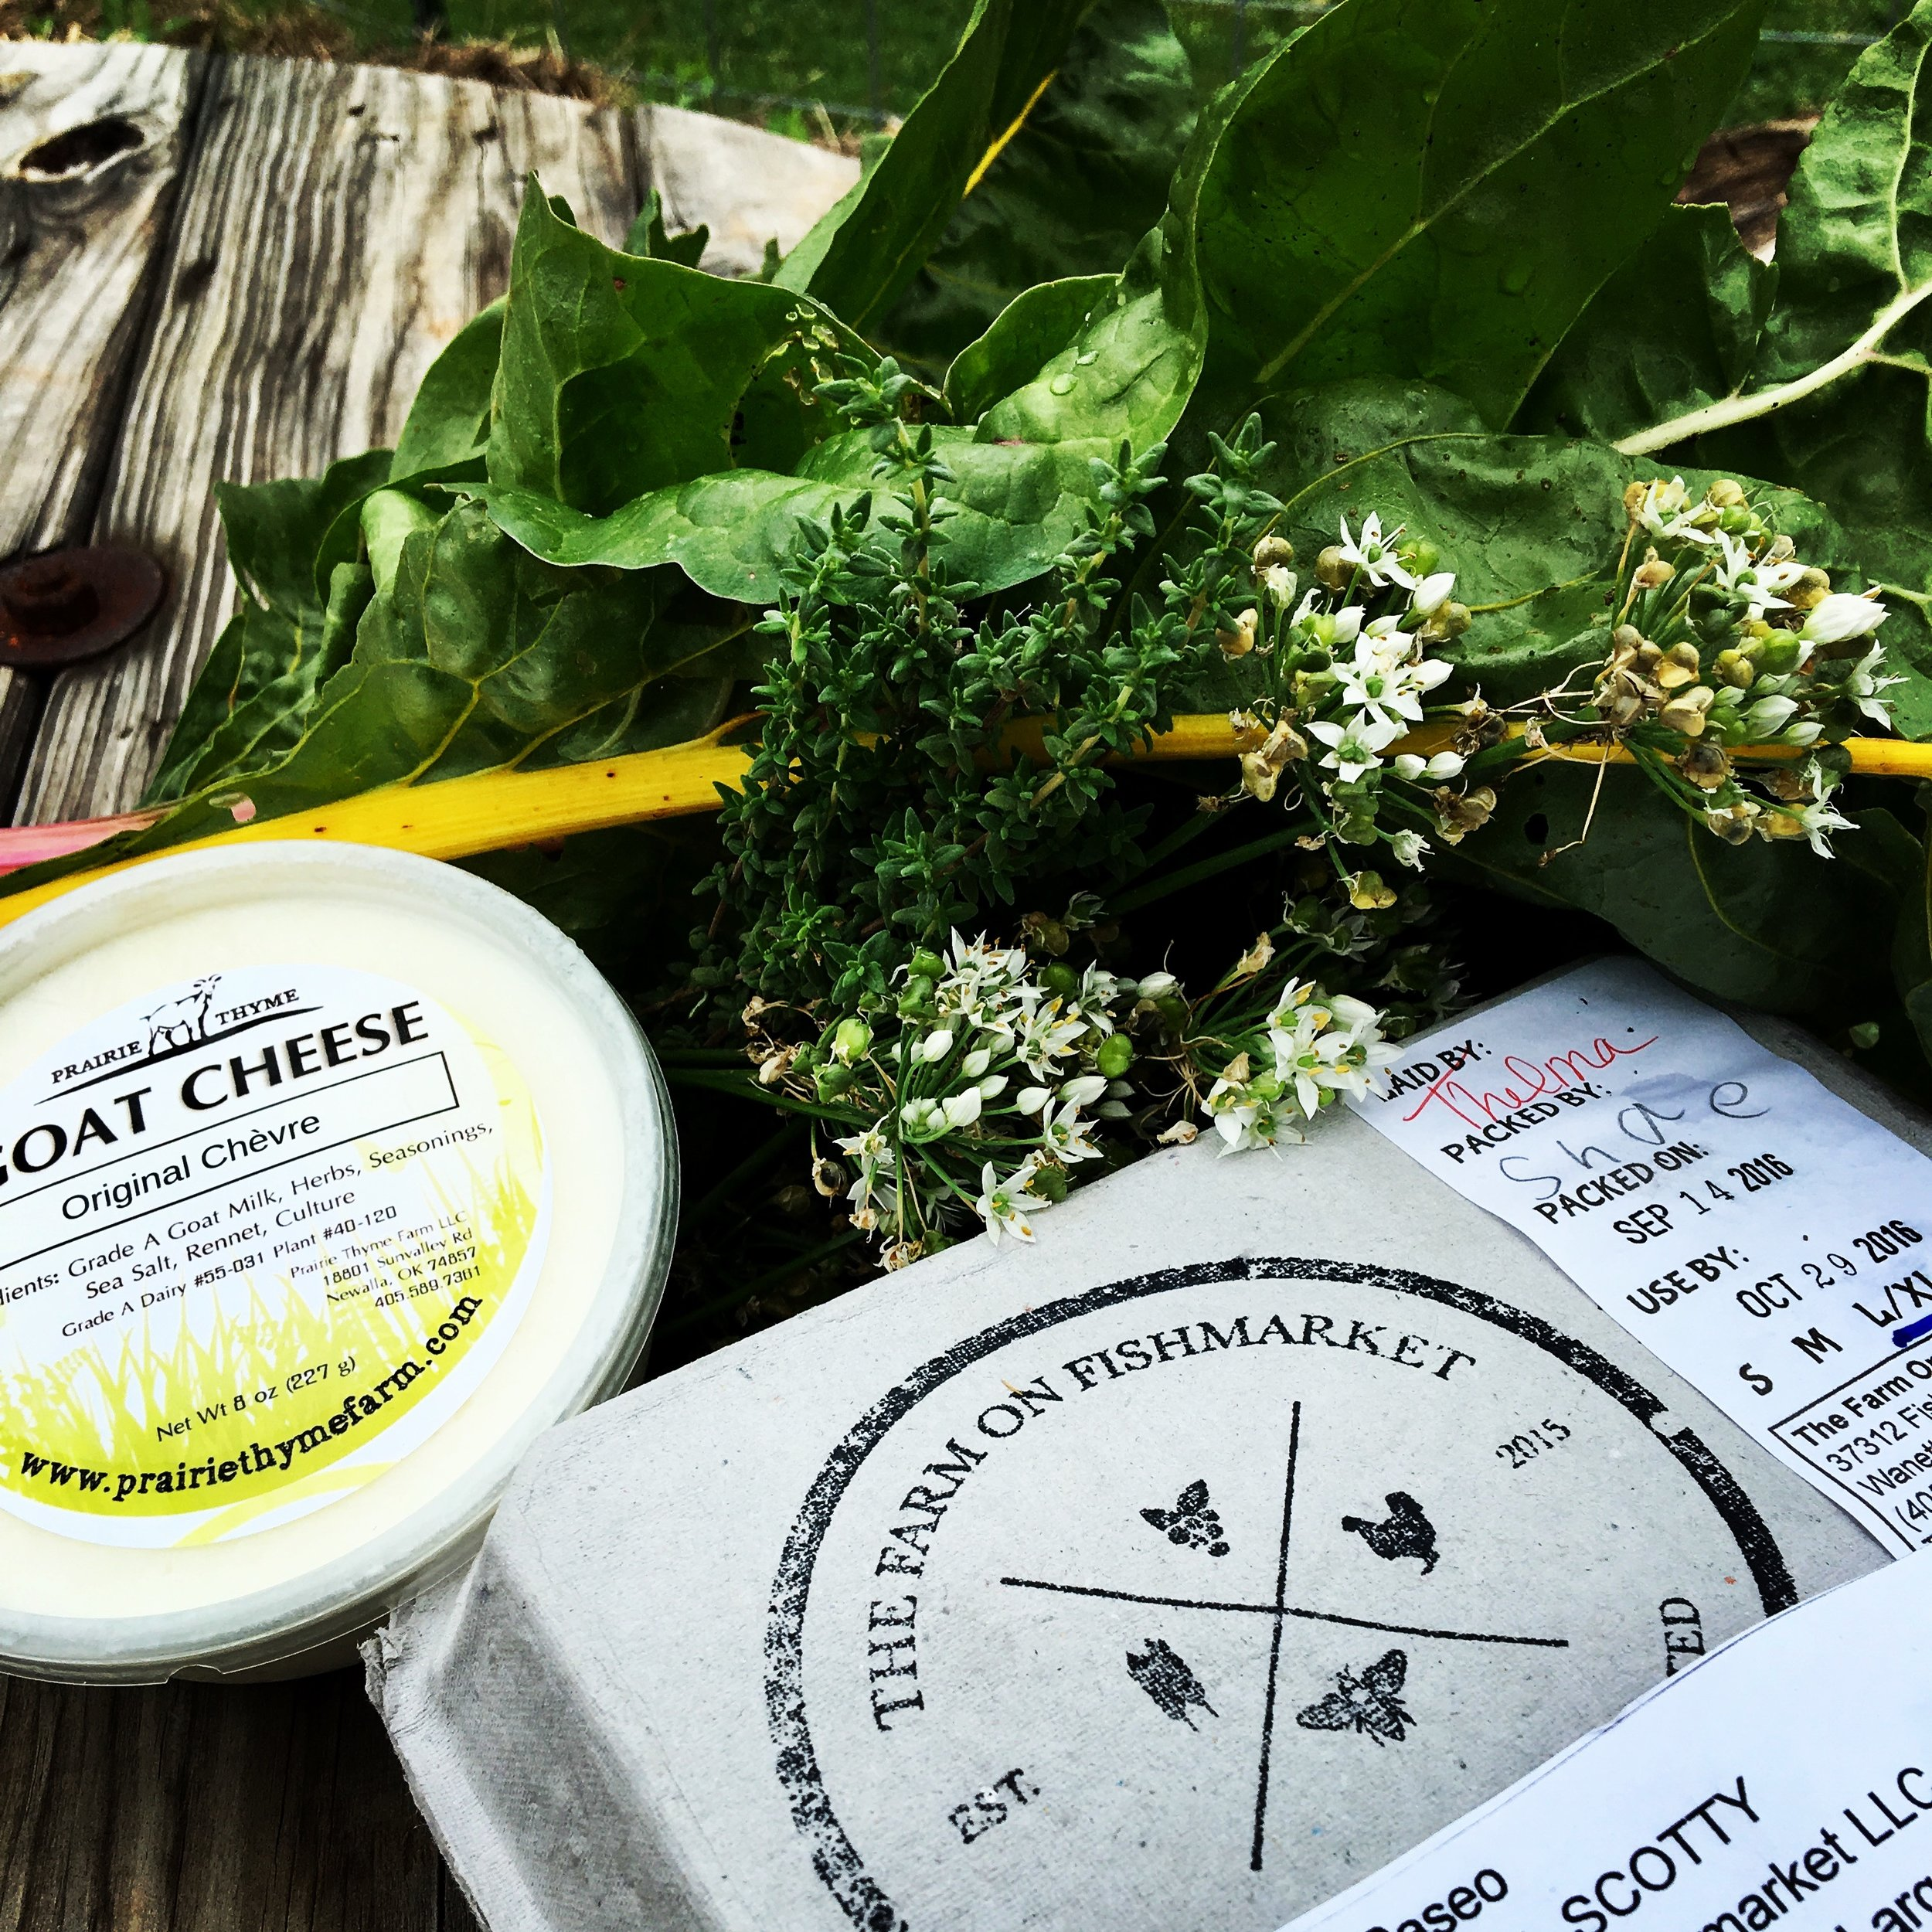 Just picked up my order from the Cooperative, snagged some chard and herbs, and ready to bake!